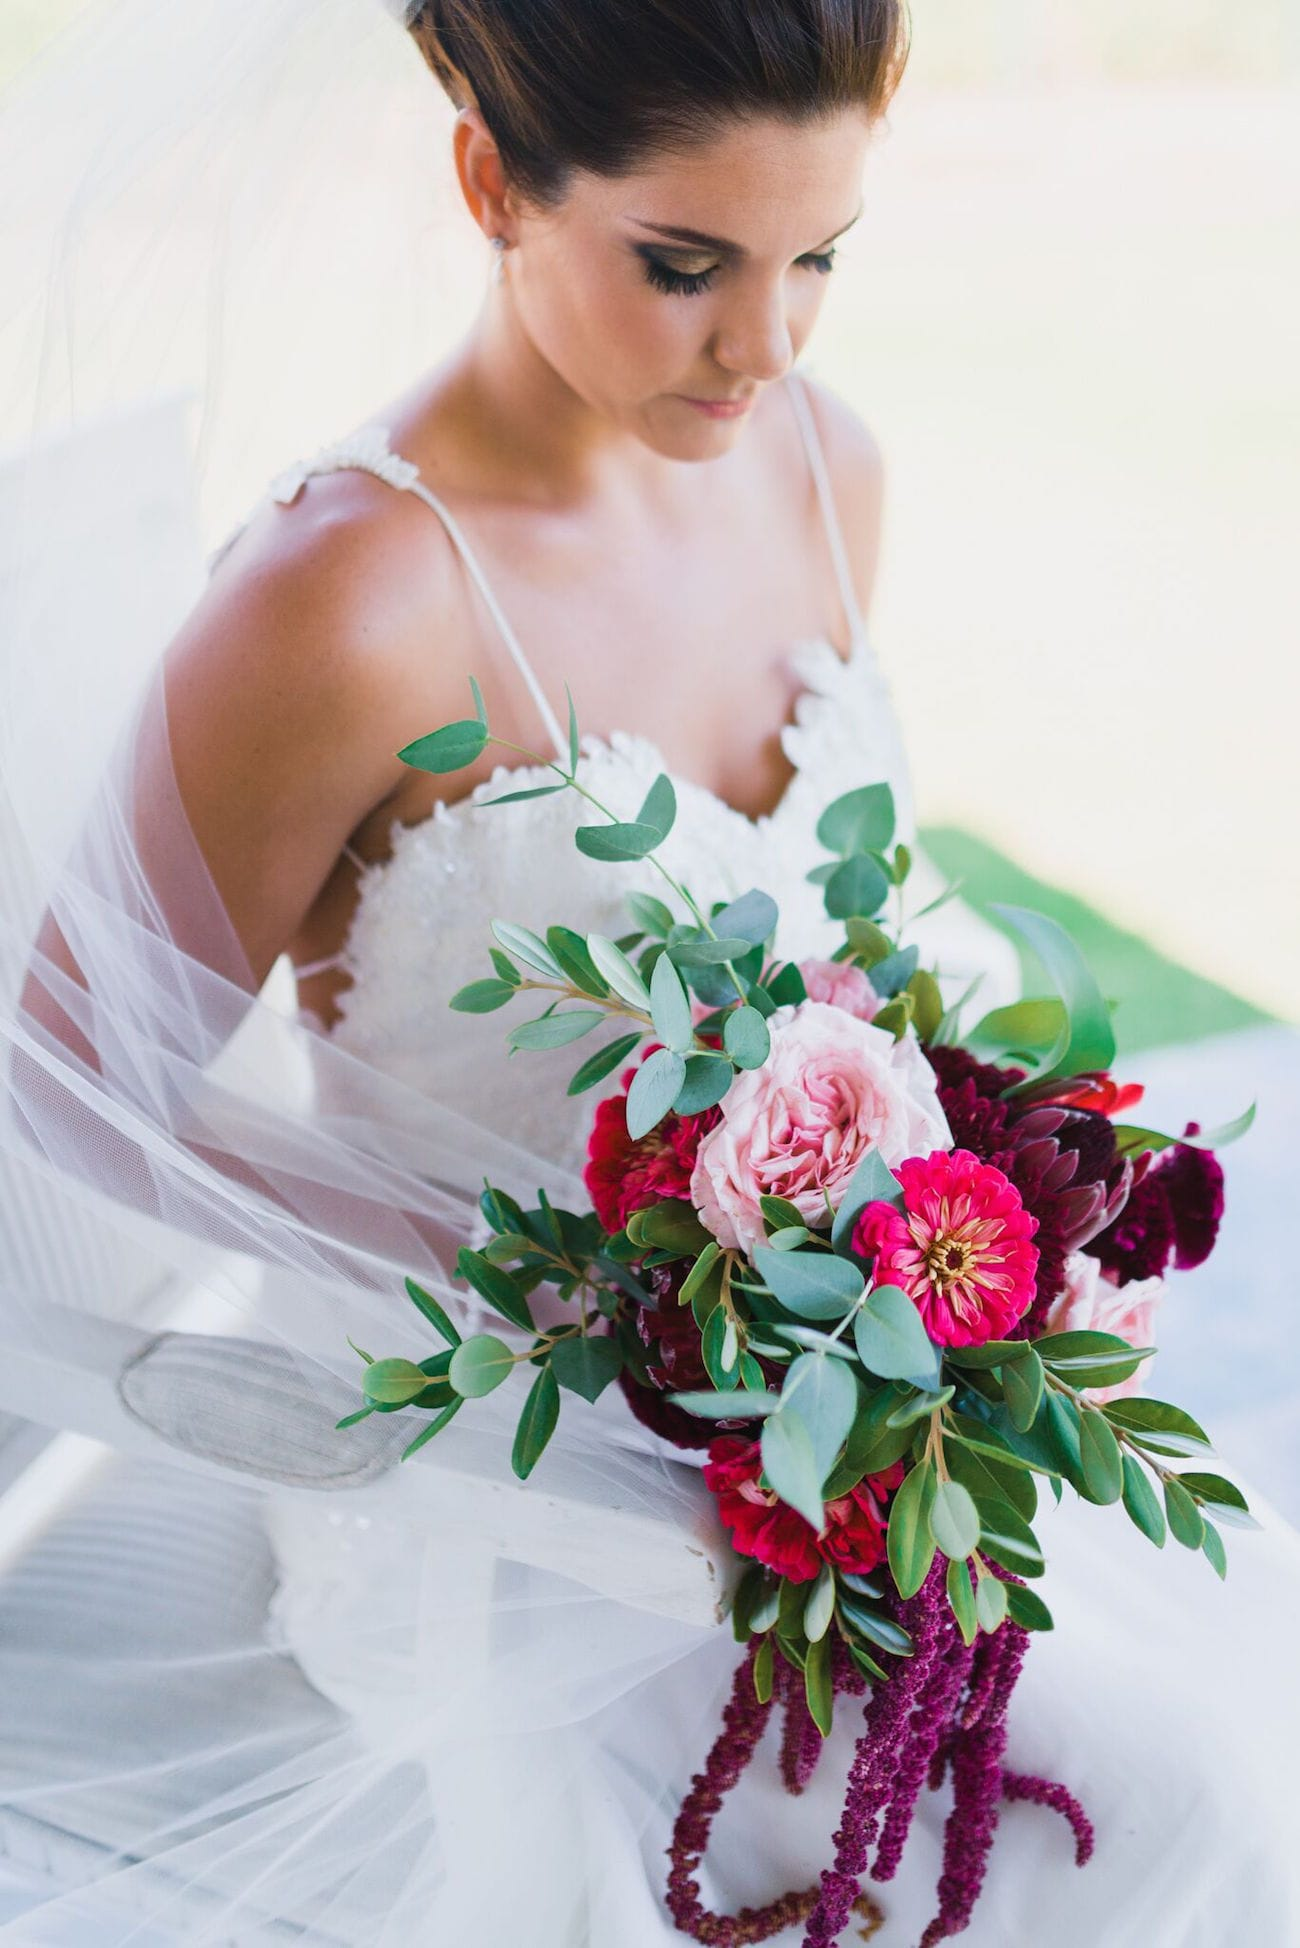 Jewel-tone bouquet with proteas, peonies and amaranthus | Credit: Matthew Carr